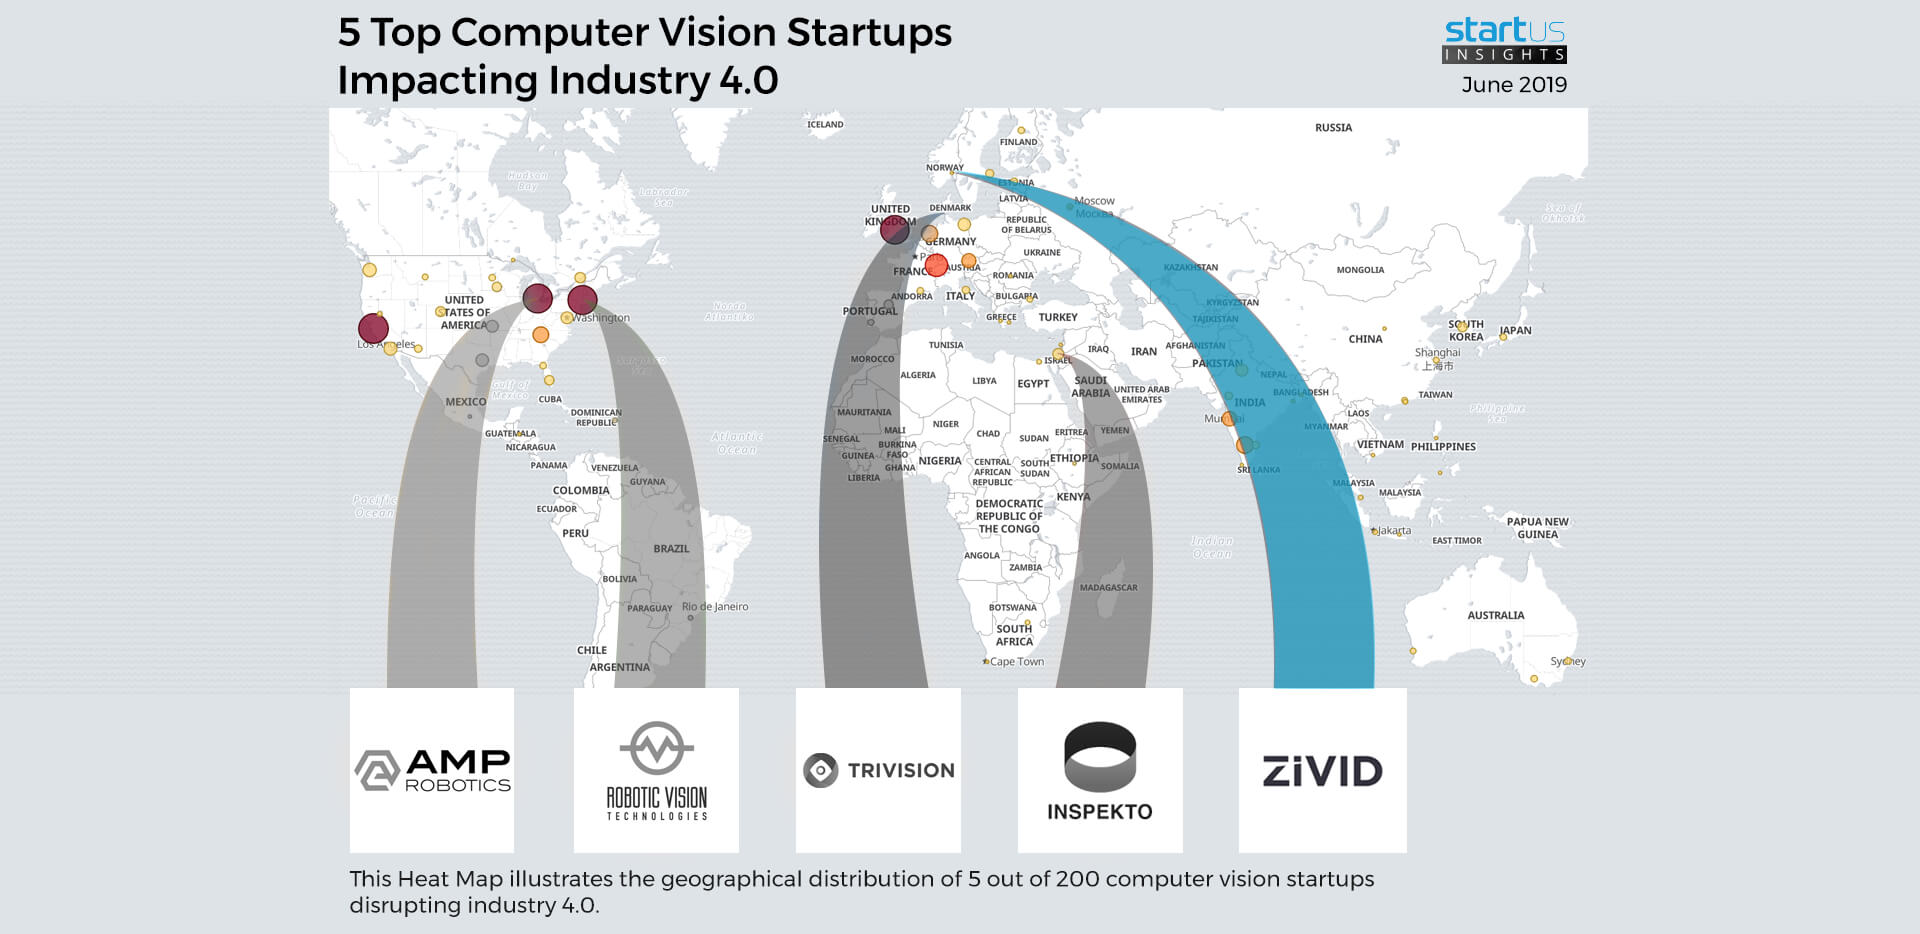 ComputerVision_in_Industry4.0_Heatmap_StartUsInsights-noresize